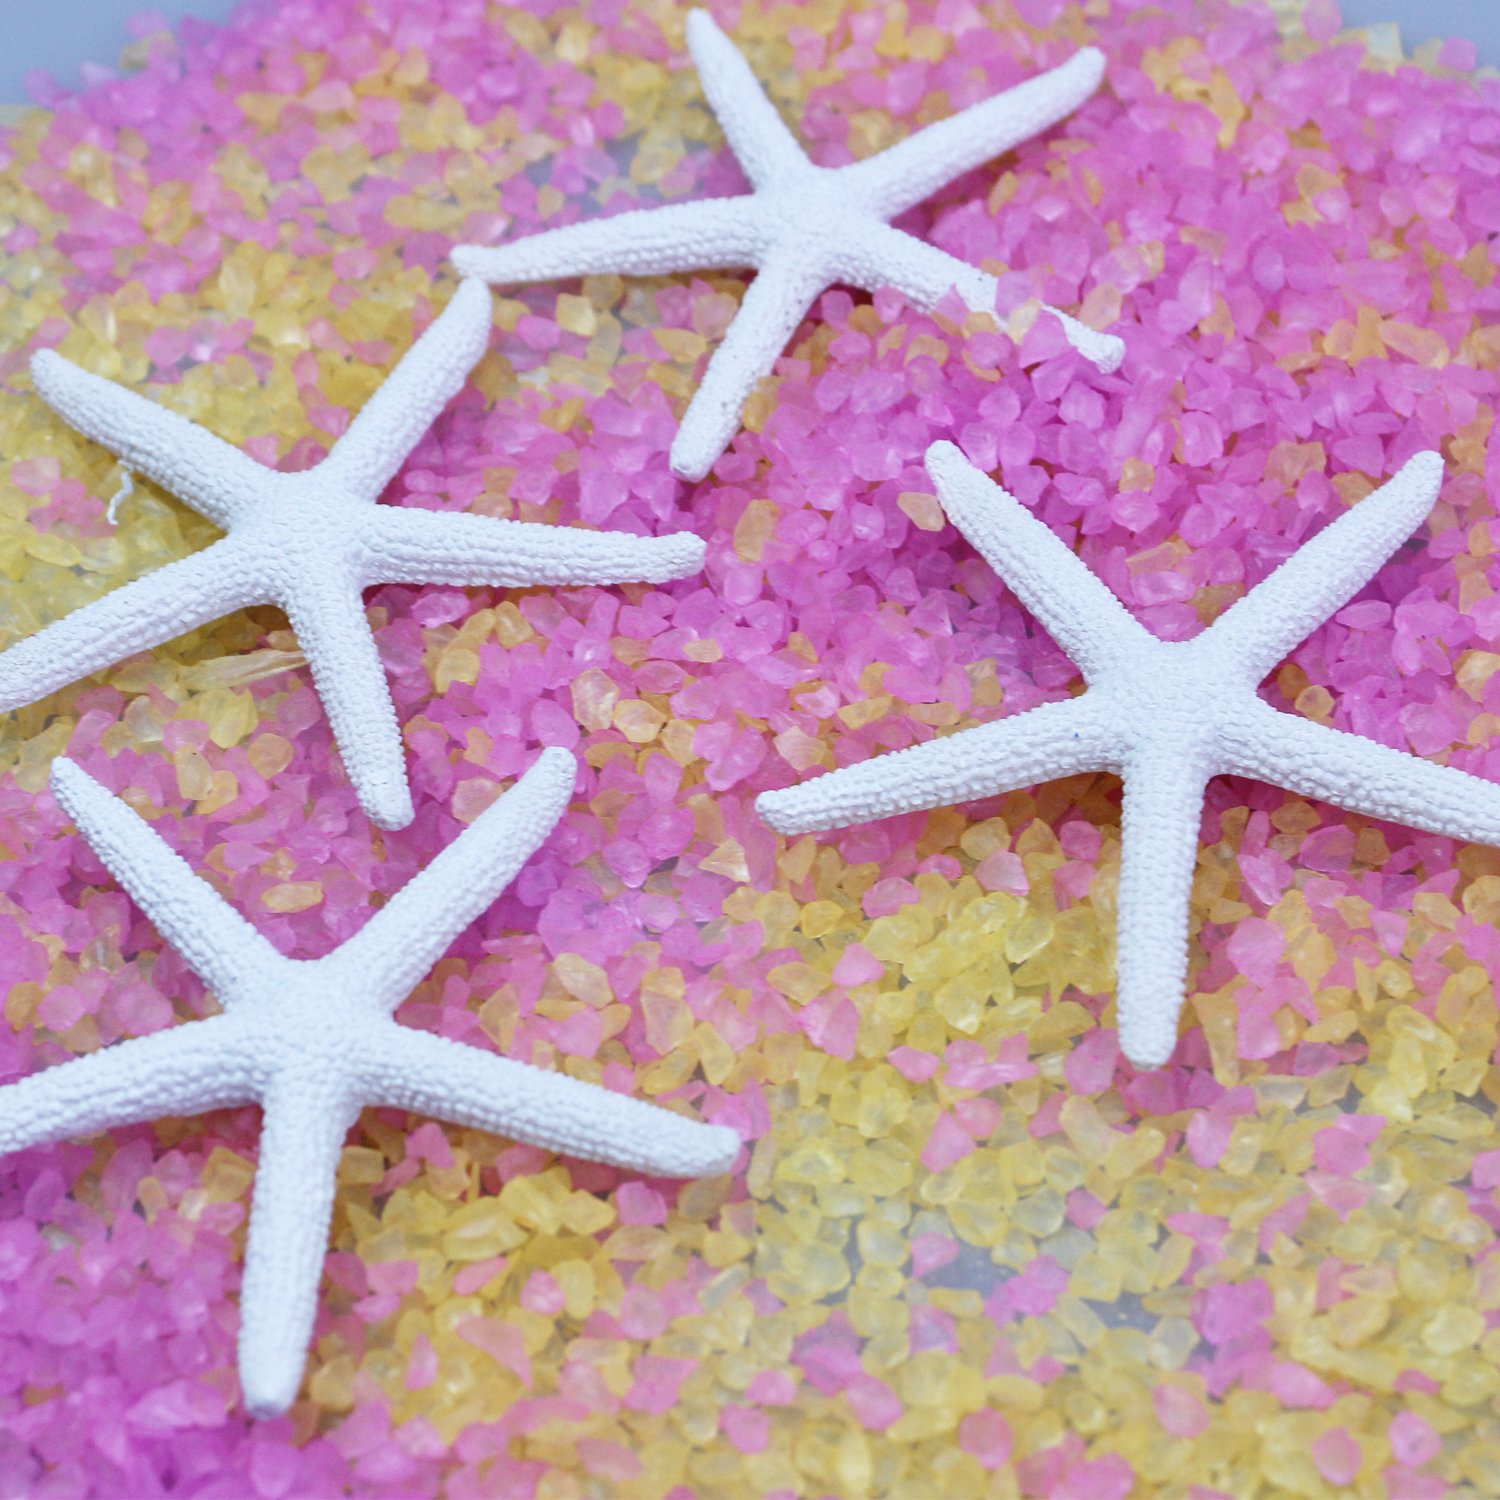 LJY Resin Starfish for Crafts